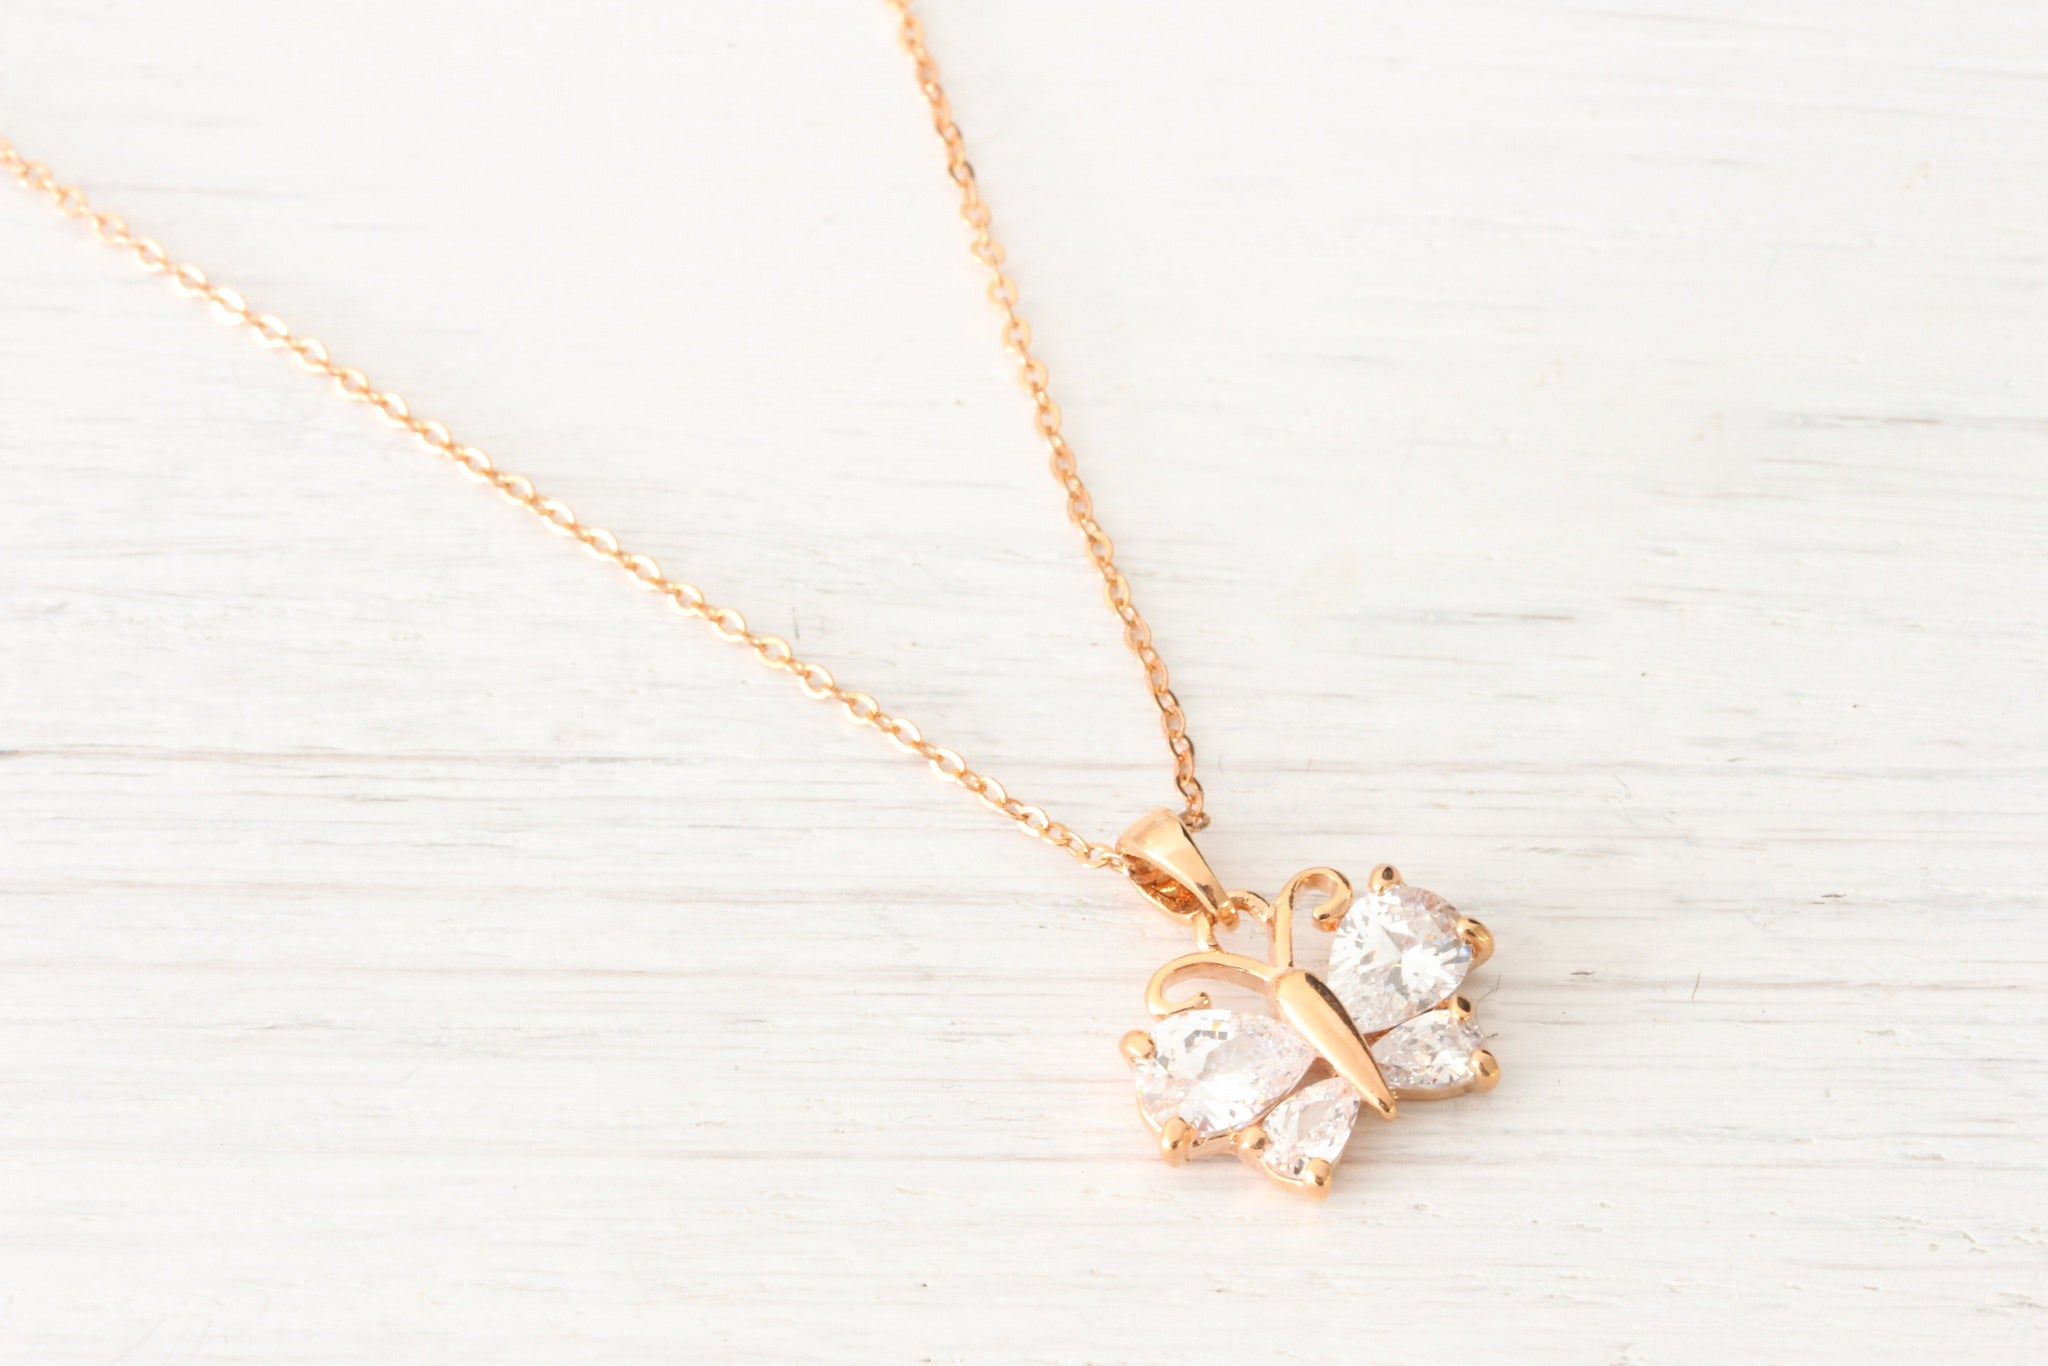 Dainty Rose Gold Butterfly Necklace with Rhinestone Crystals